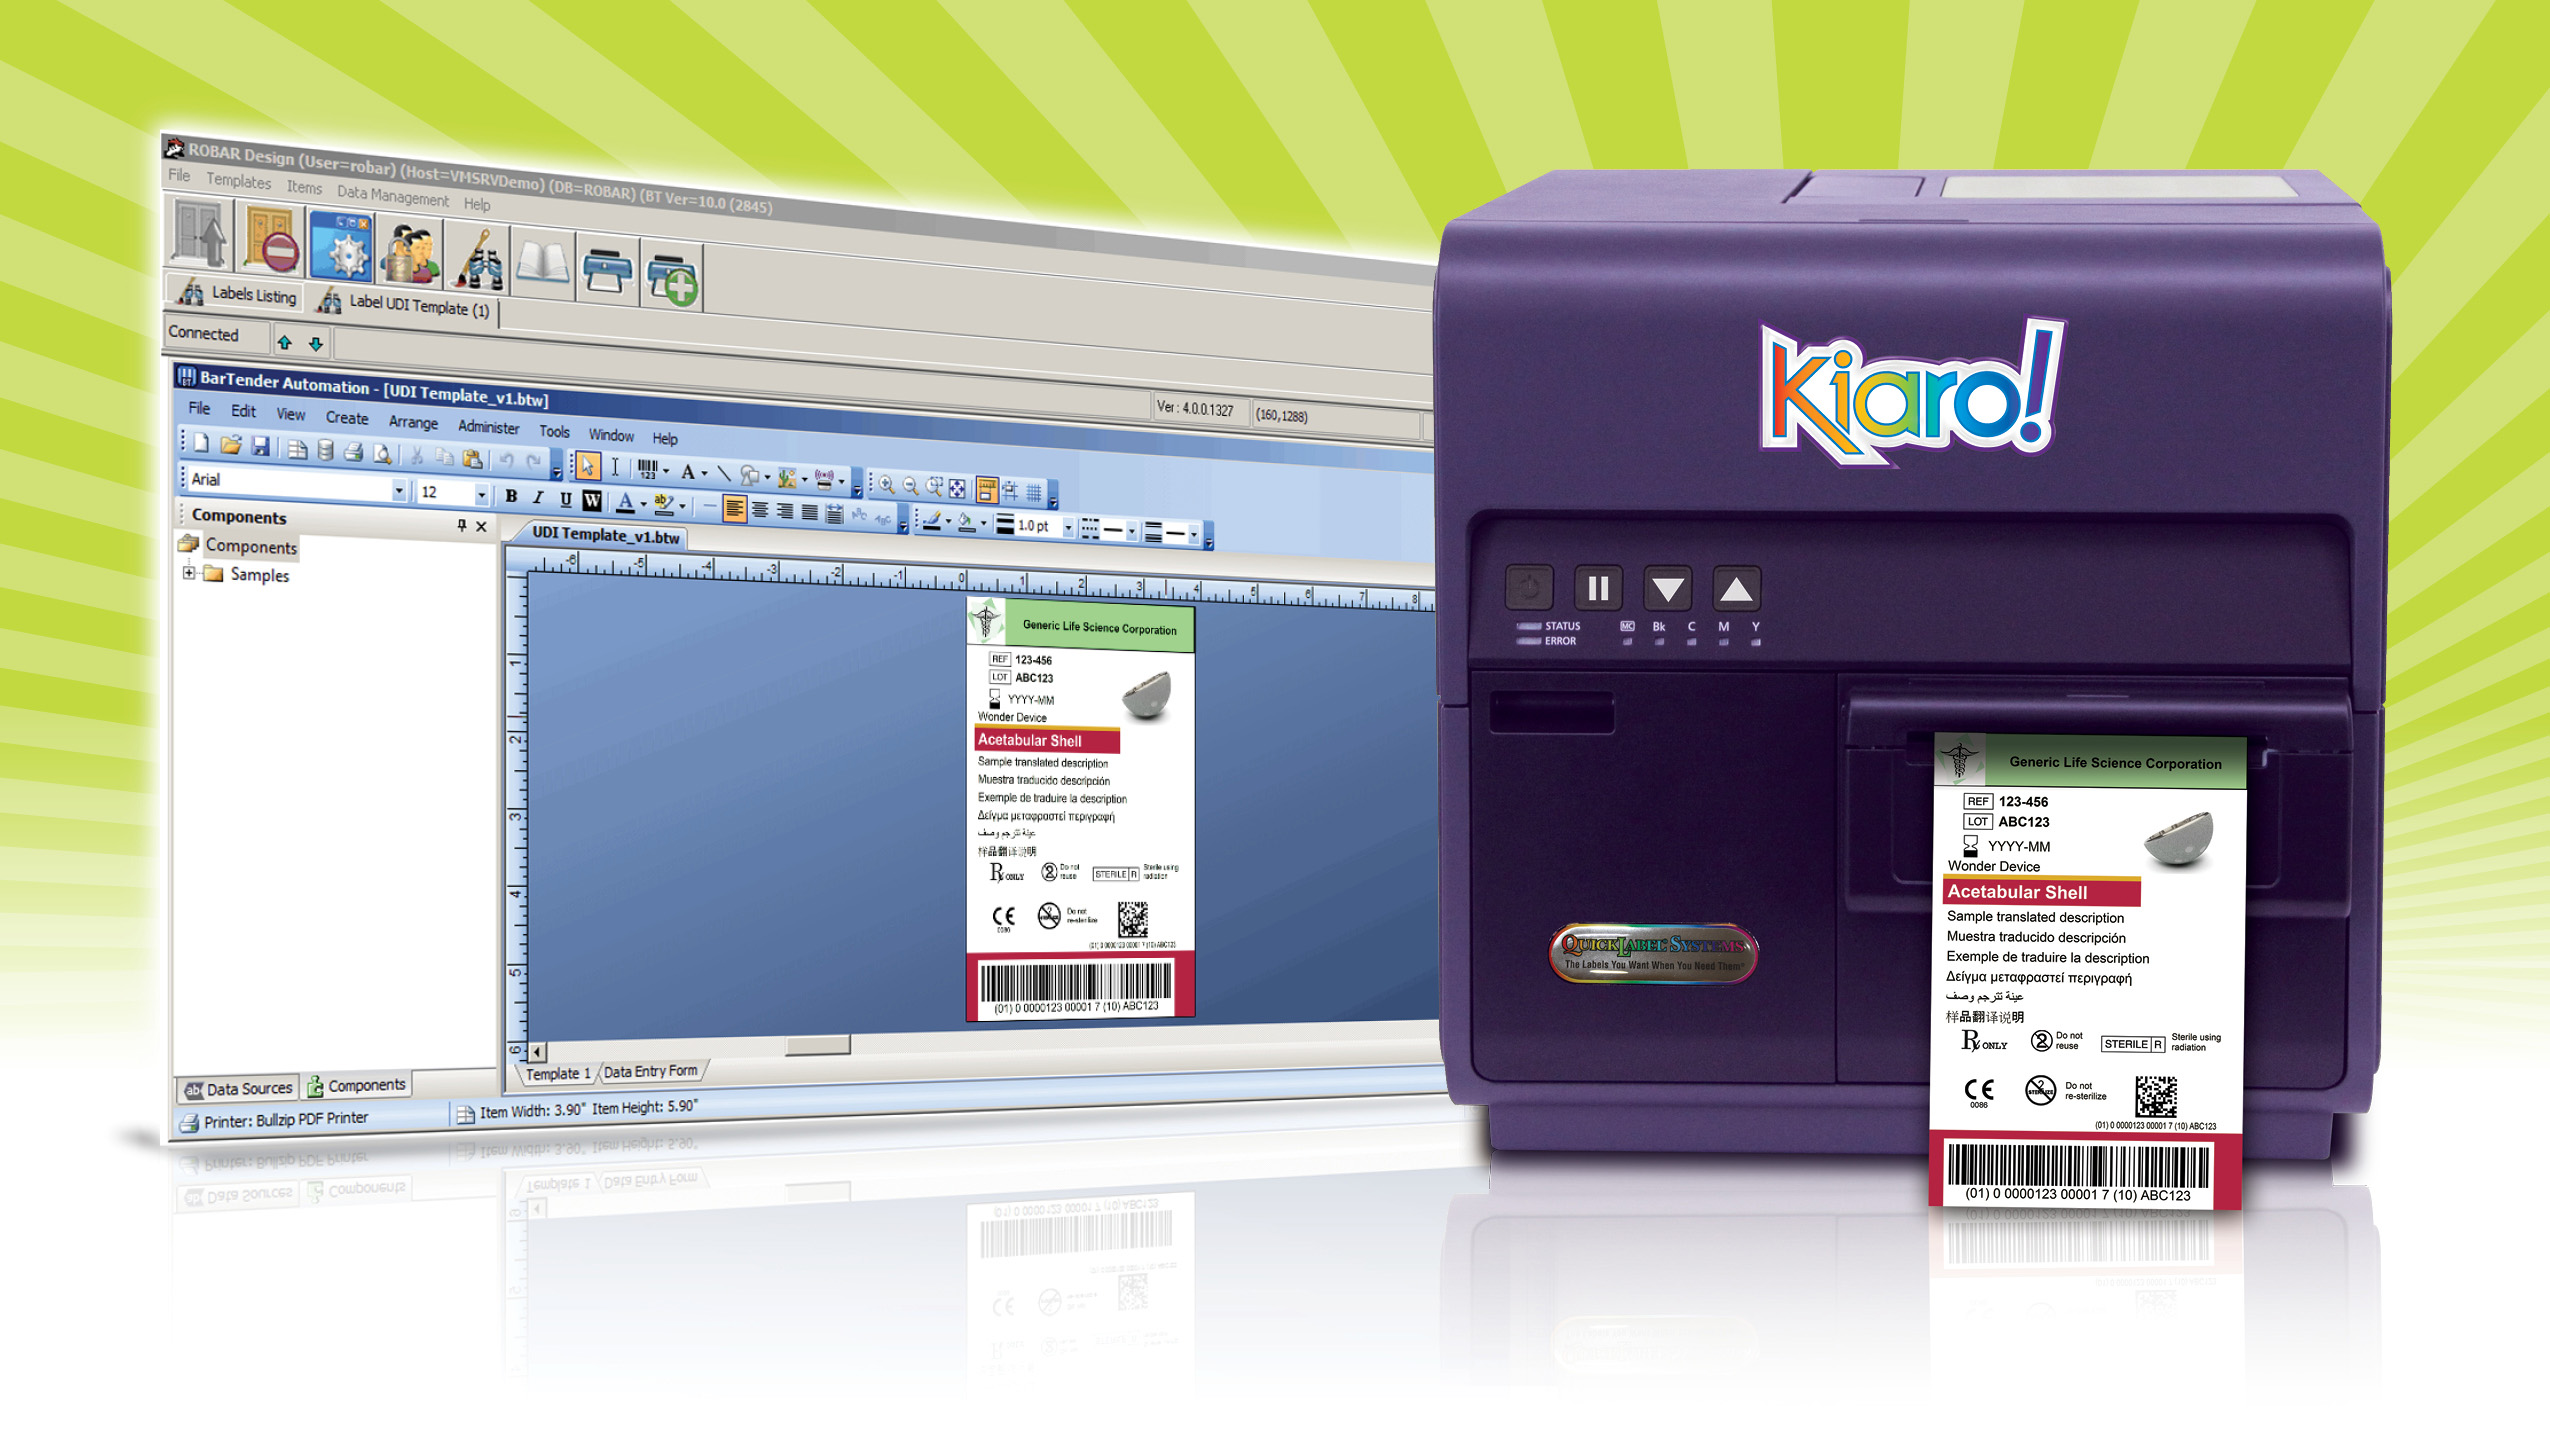 Kiaro! Color Label Printer